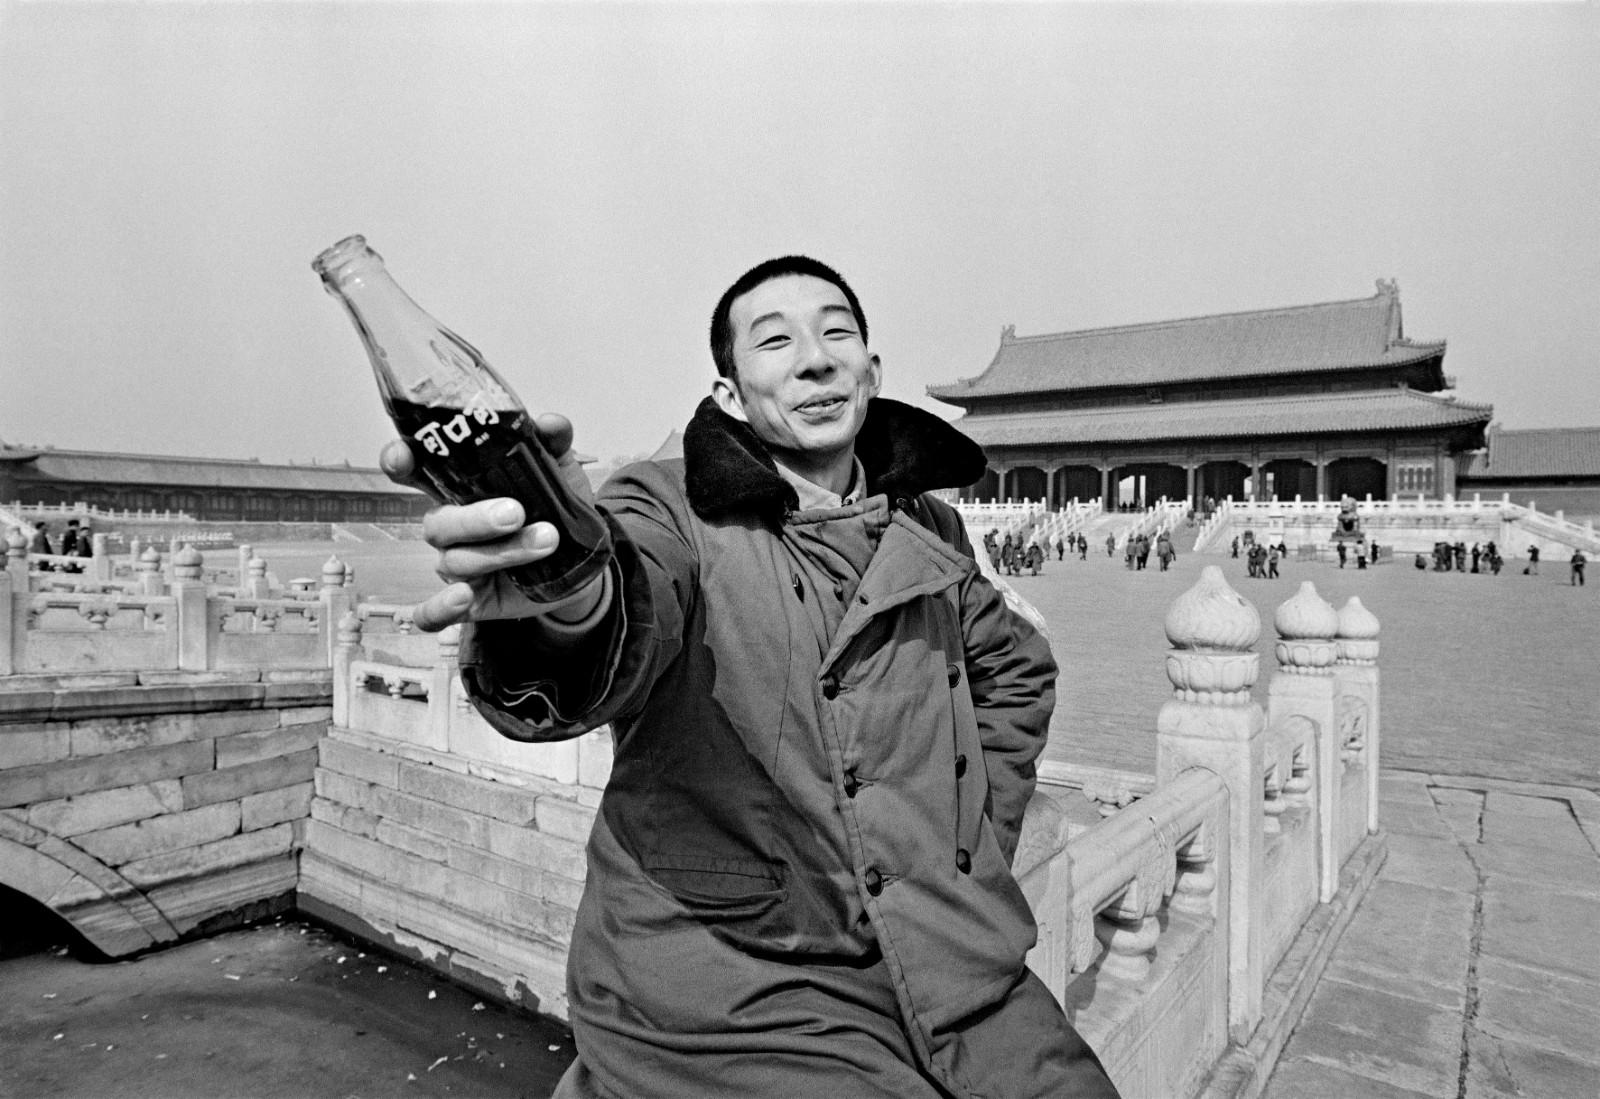 """Coca-Cola Feel the Taste!"" A young man proffers the iconic glass bottle which symbolizes Coca-Cola around the world. The Coca-Cola Company had just resumed production in China. Forbidden City, Beijing, 1981."